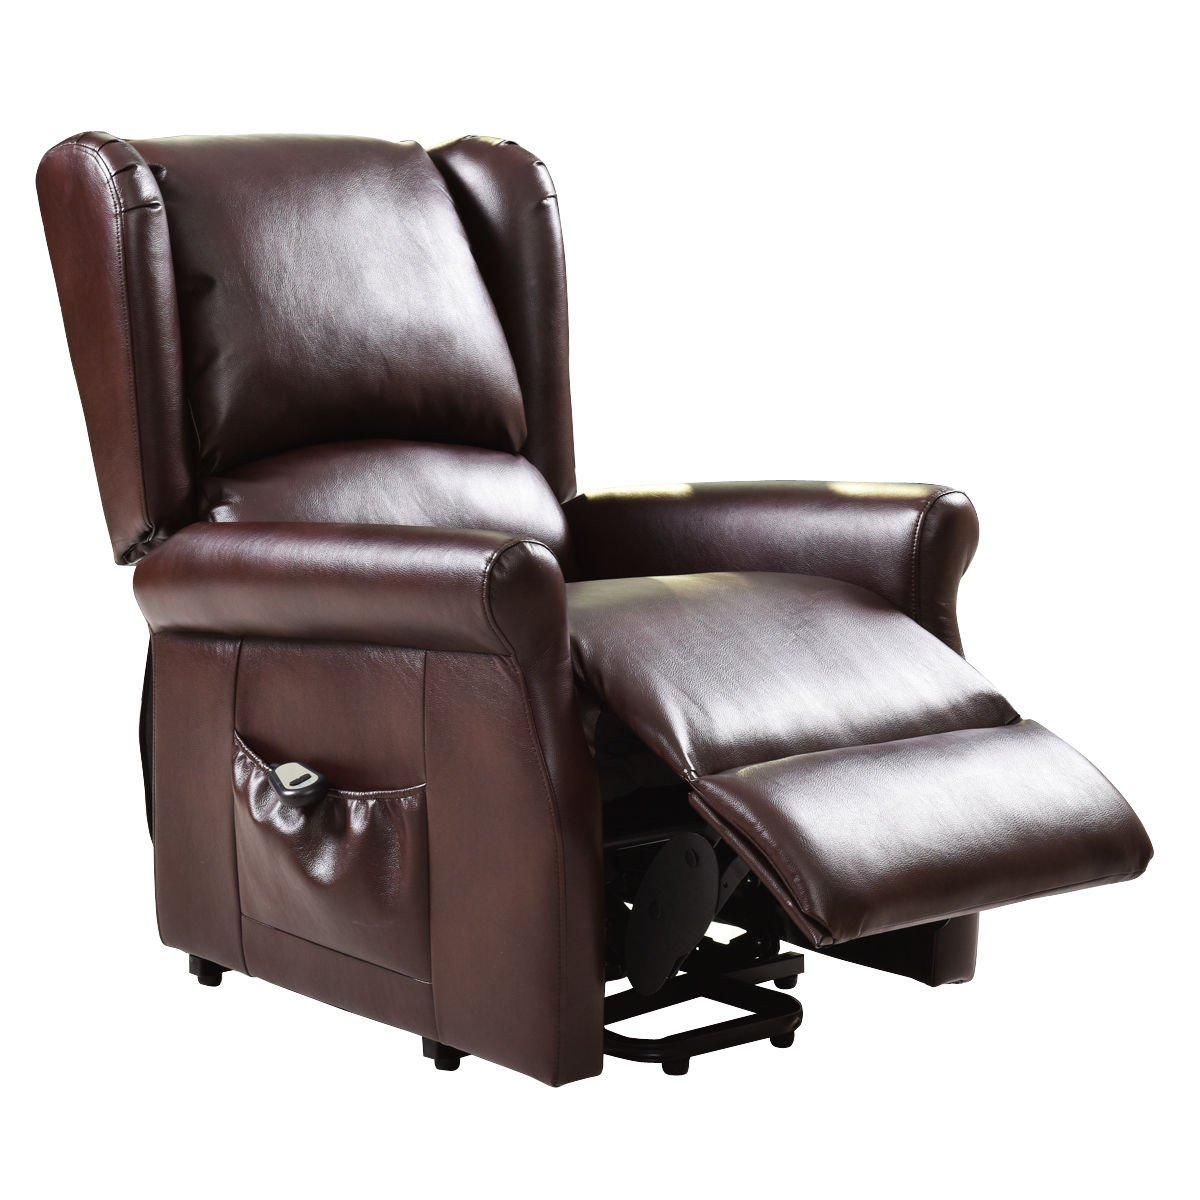 Brown Lift Chair Electric Power Recliner